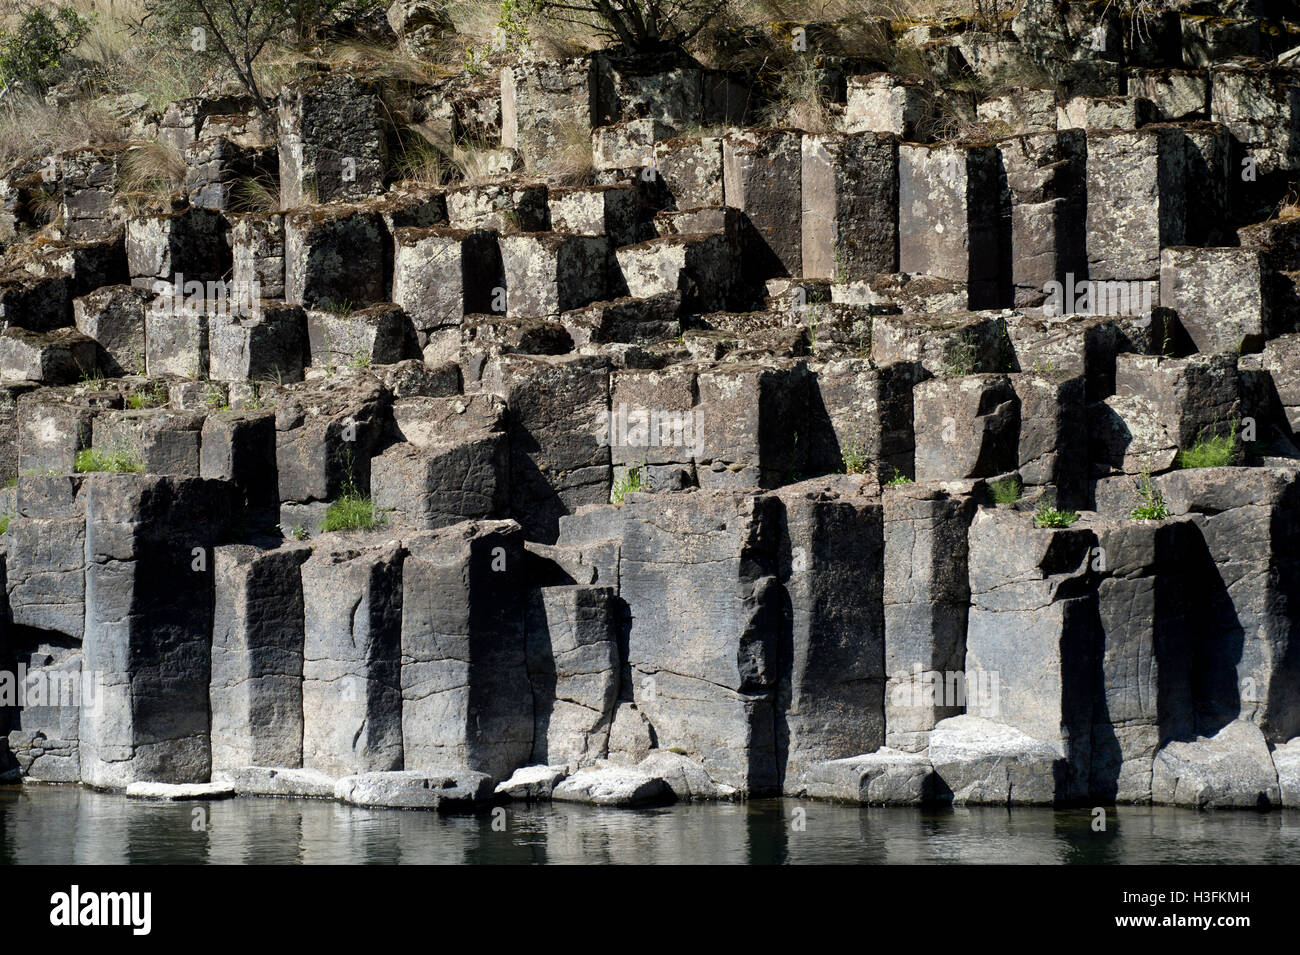 Columnar basalt along the Lower Salmon River in west-central Idaho - Stock Image